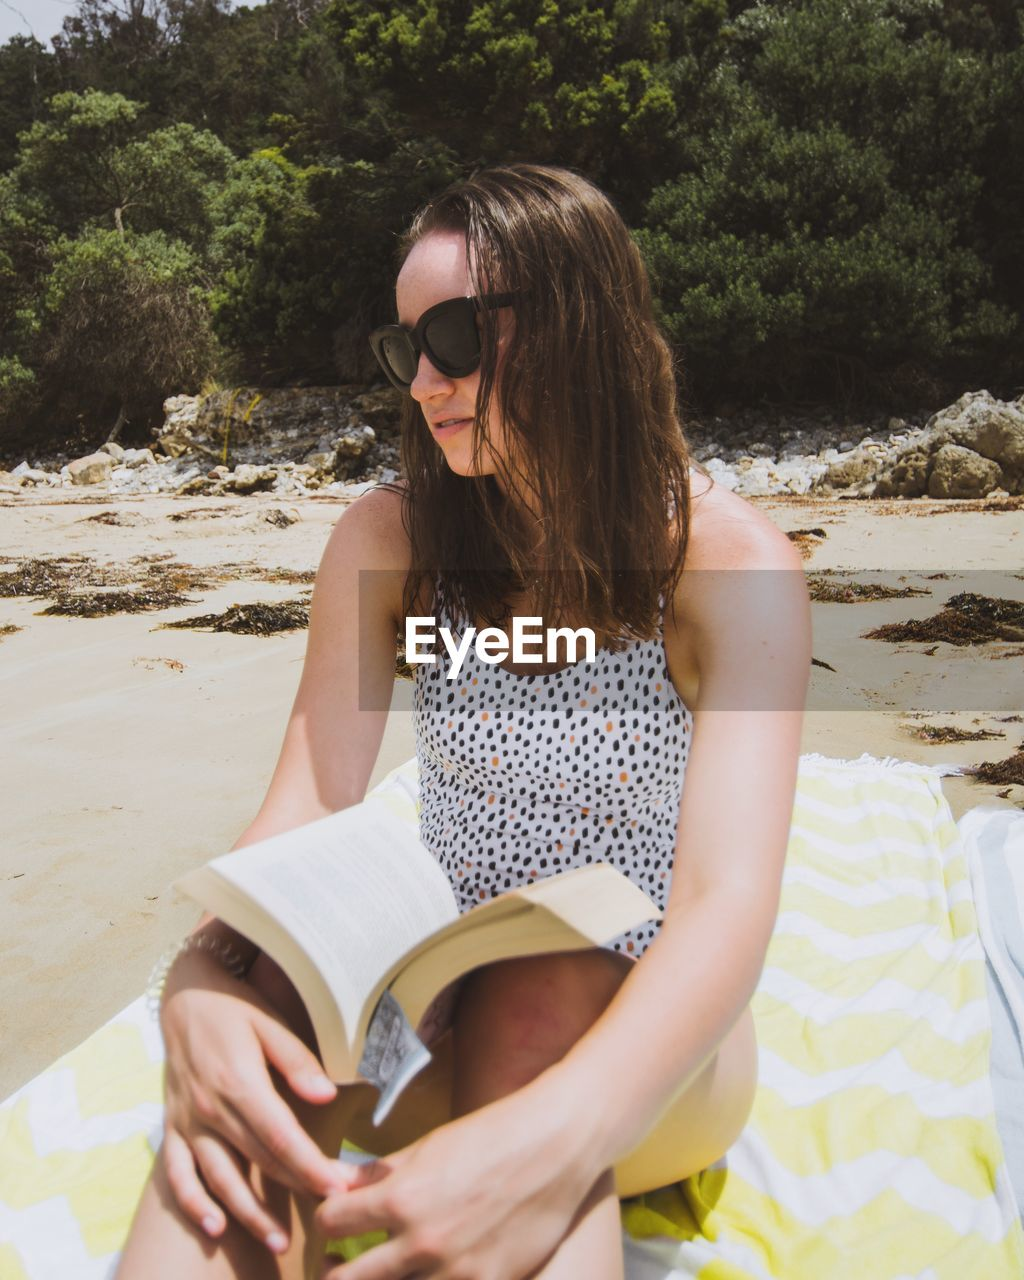 YOUNG WOMAN READING BOOK WHILE SITTING AT BEACH